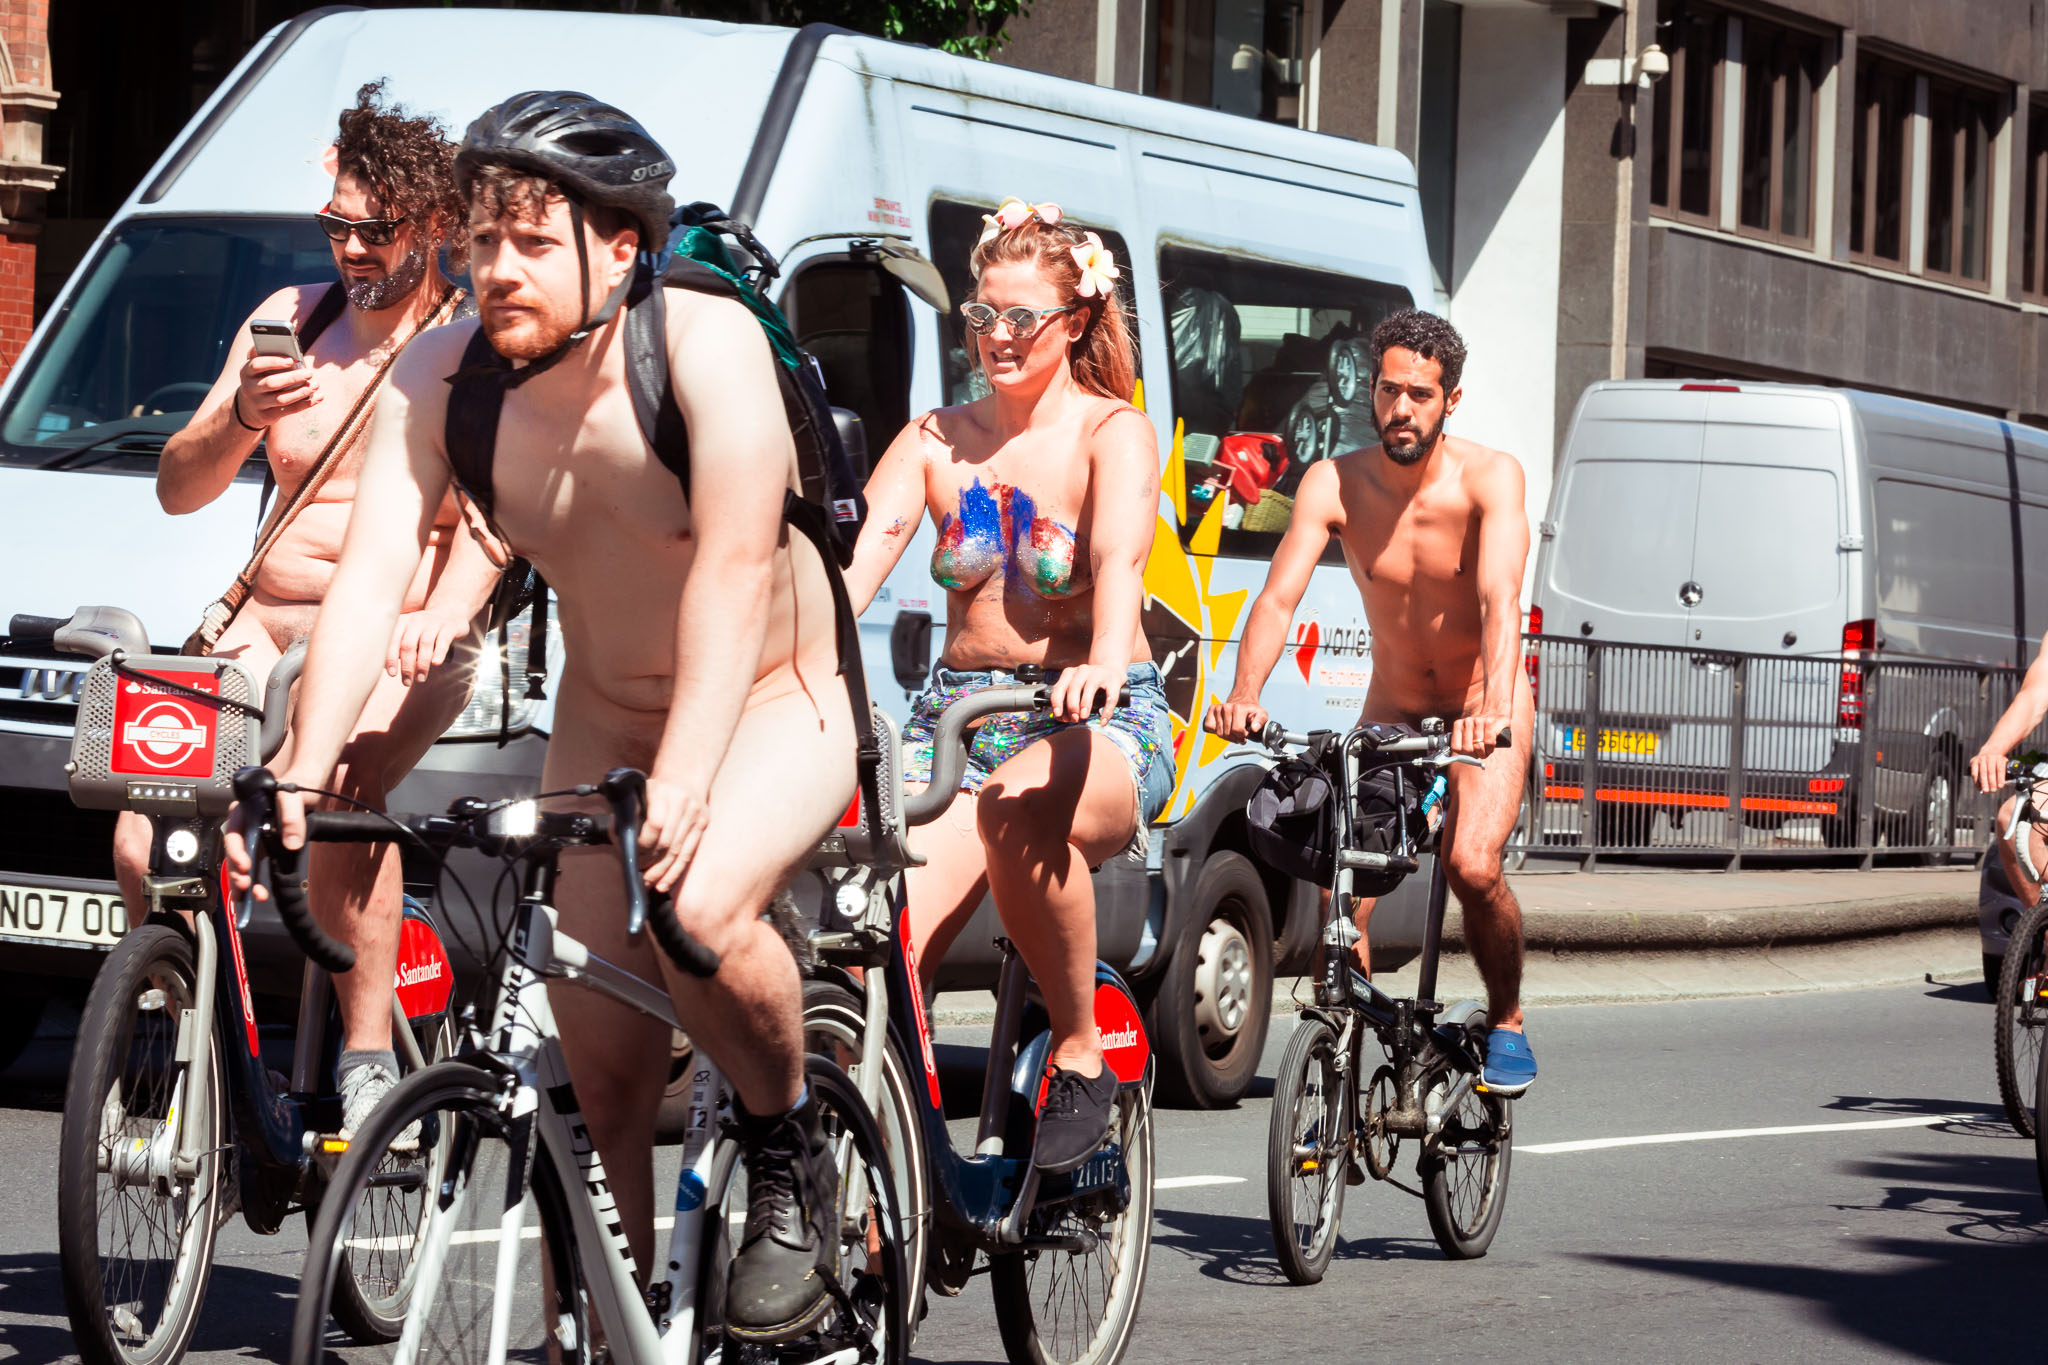 _MG_1669 Naked Bike Ride London 190617 by Alexander Ivanov Photography for web